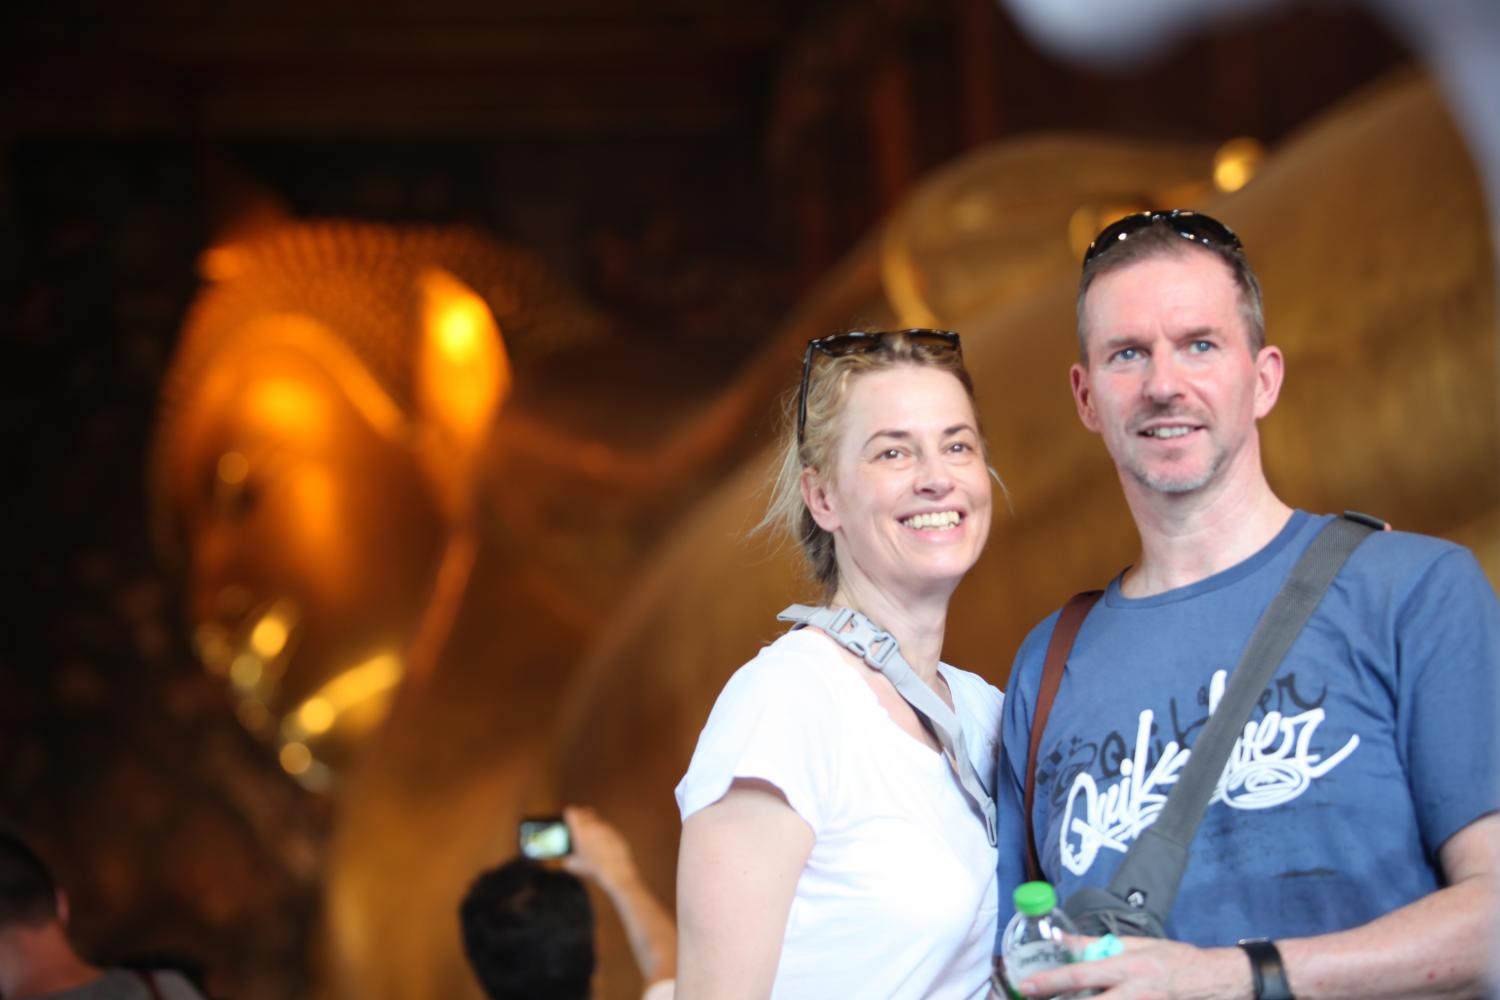 Foreign tourists pose for a photograph at Bangkok's Wat Pho, also known as the Temple of the Reclining Buddha or Wat Phra Chetuphon amid Covid-19.Apichart Jinakul